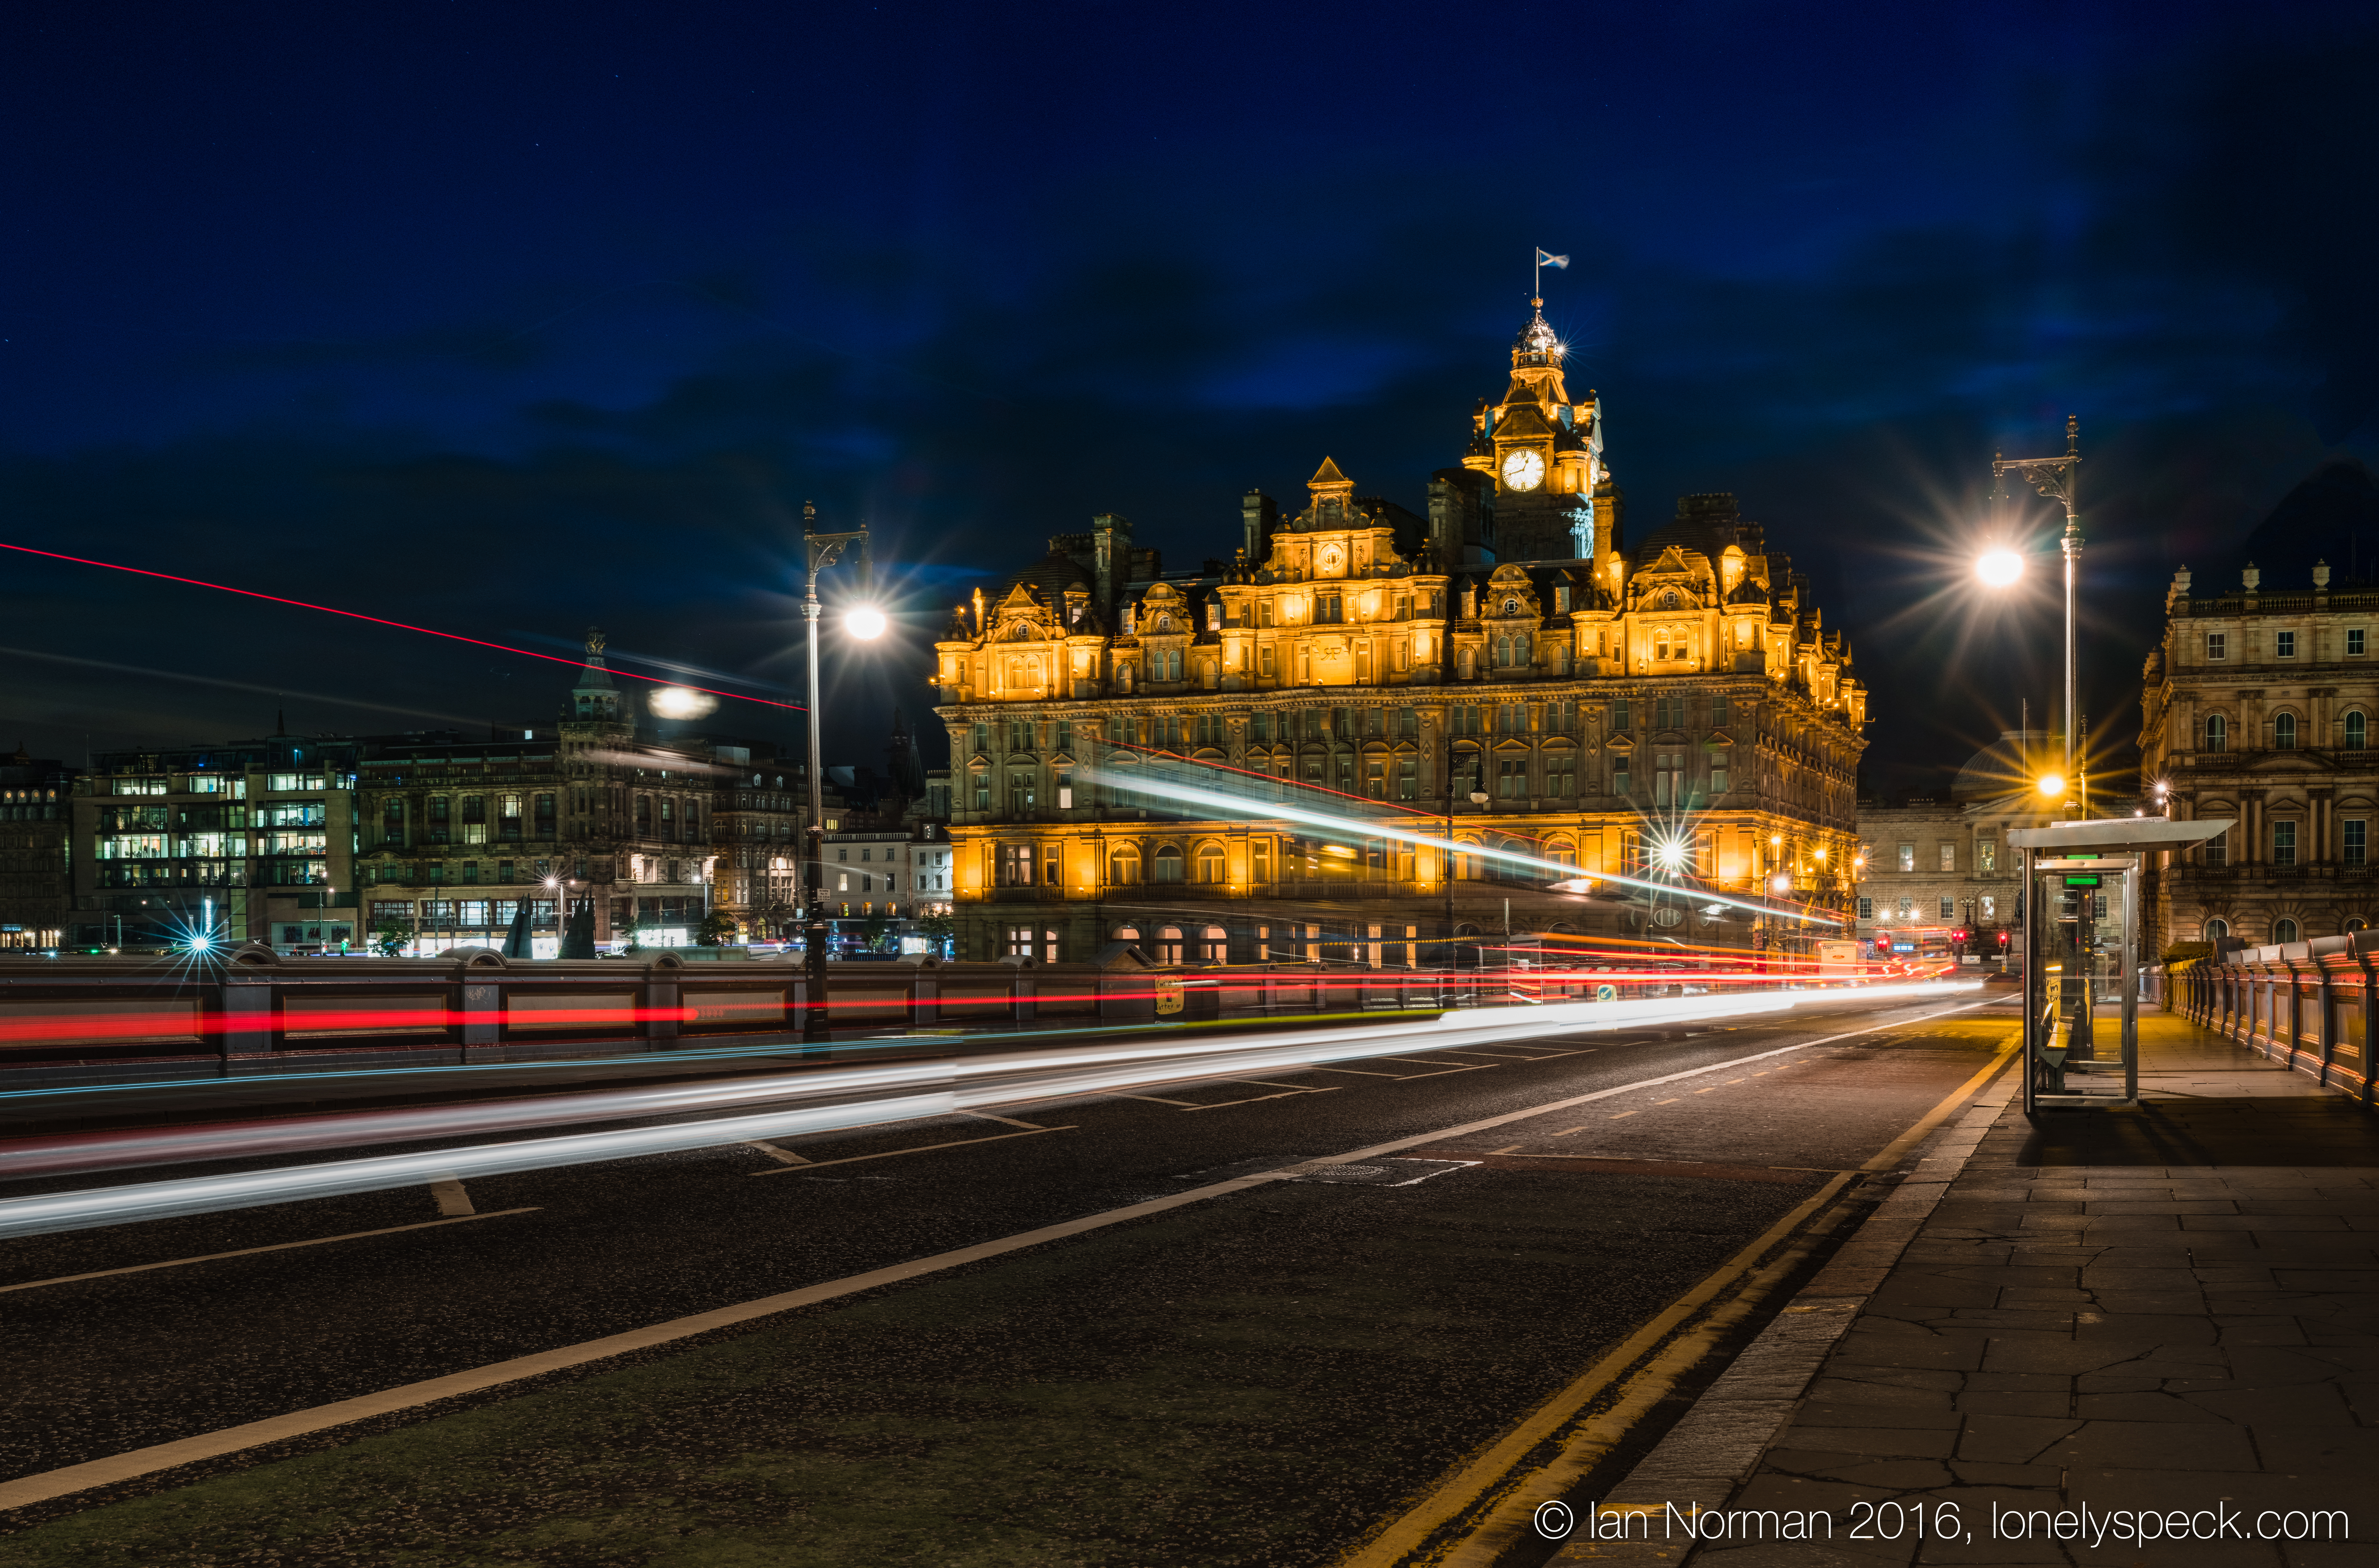 Review: Urban Night Photography with the Fujifilm X-T2